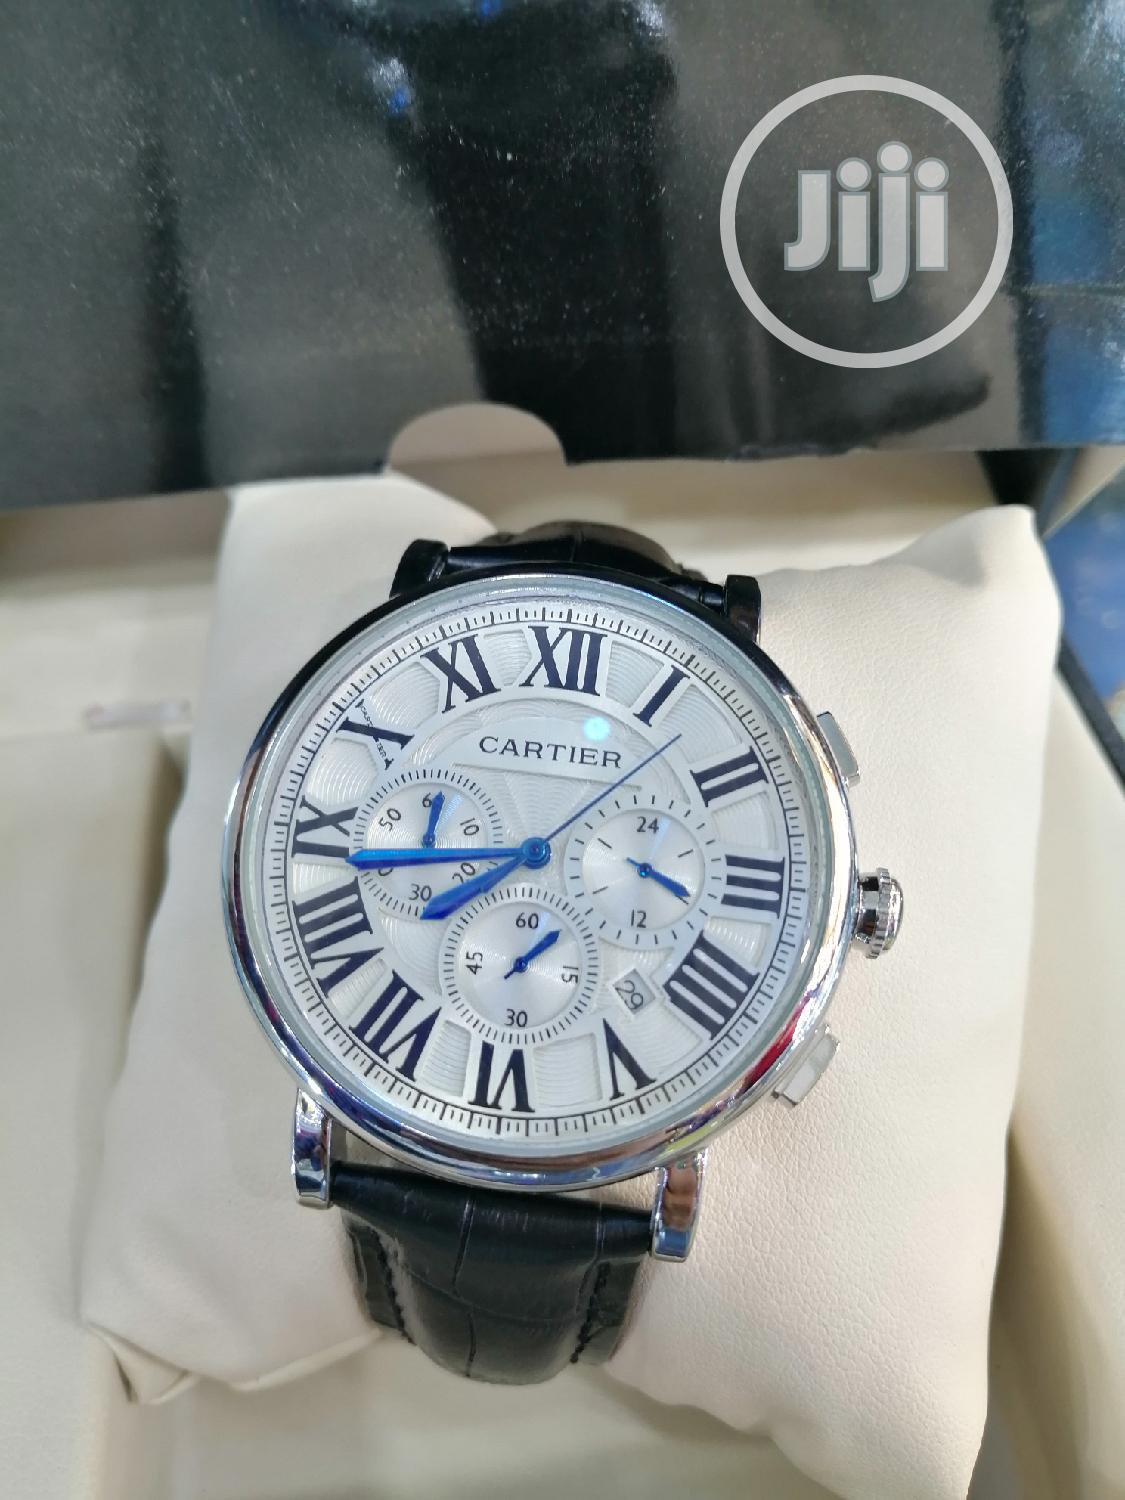 Cartier Chronograph Silver Leather Strap Watch